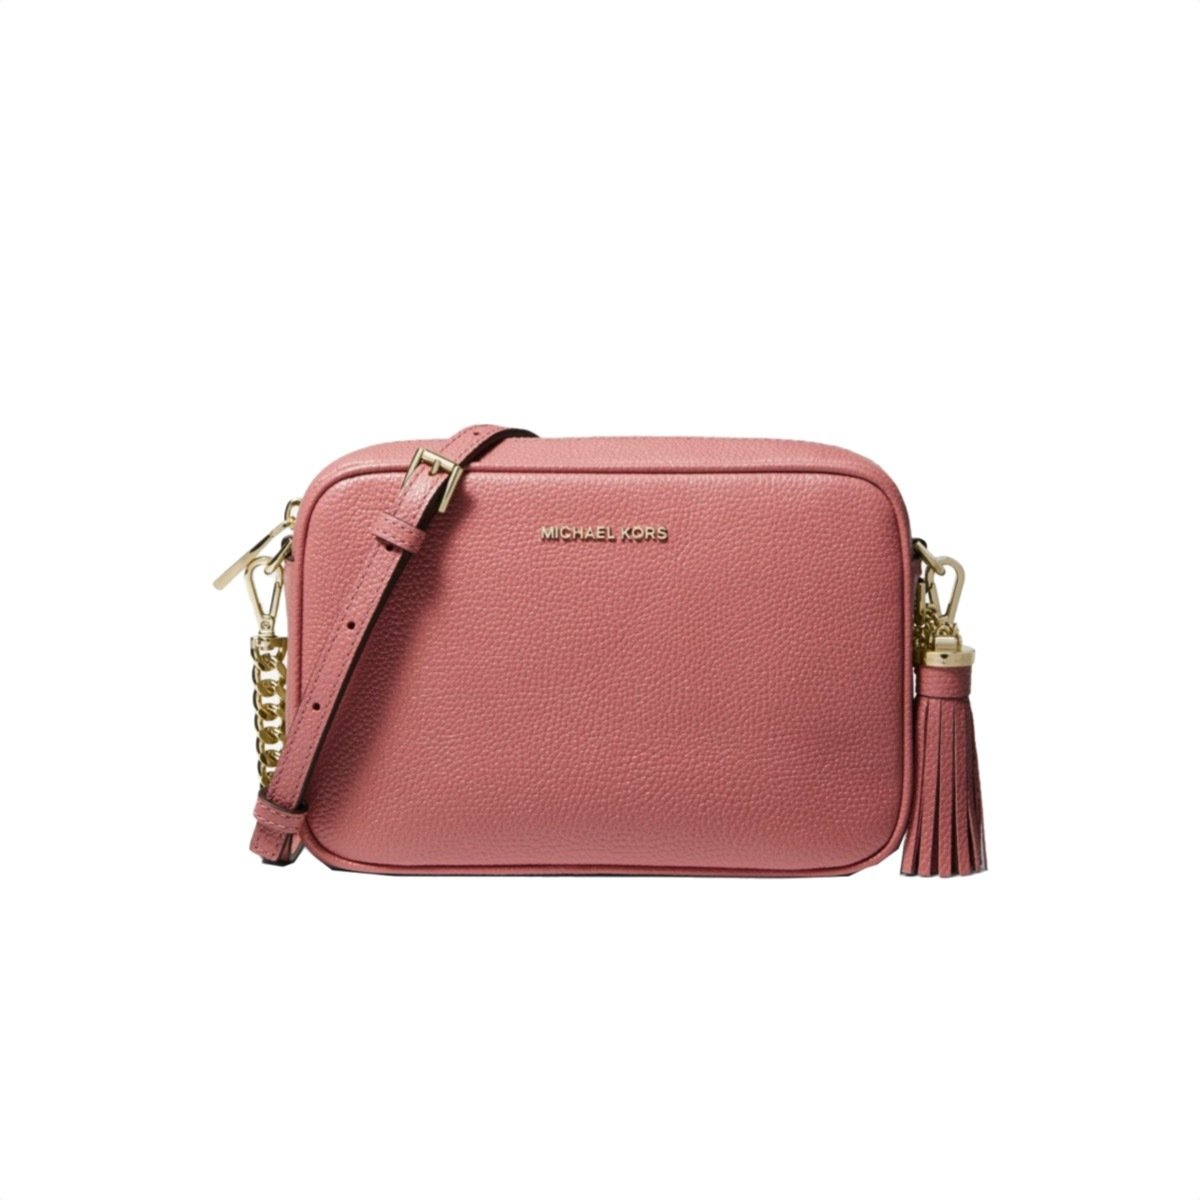 MICHAEL KORS - Tracolla Ginny in pelle - Rose